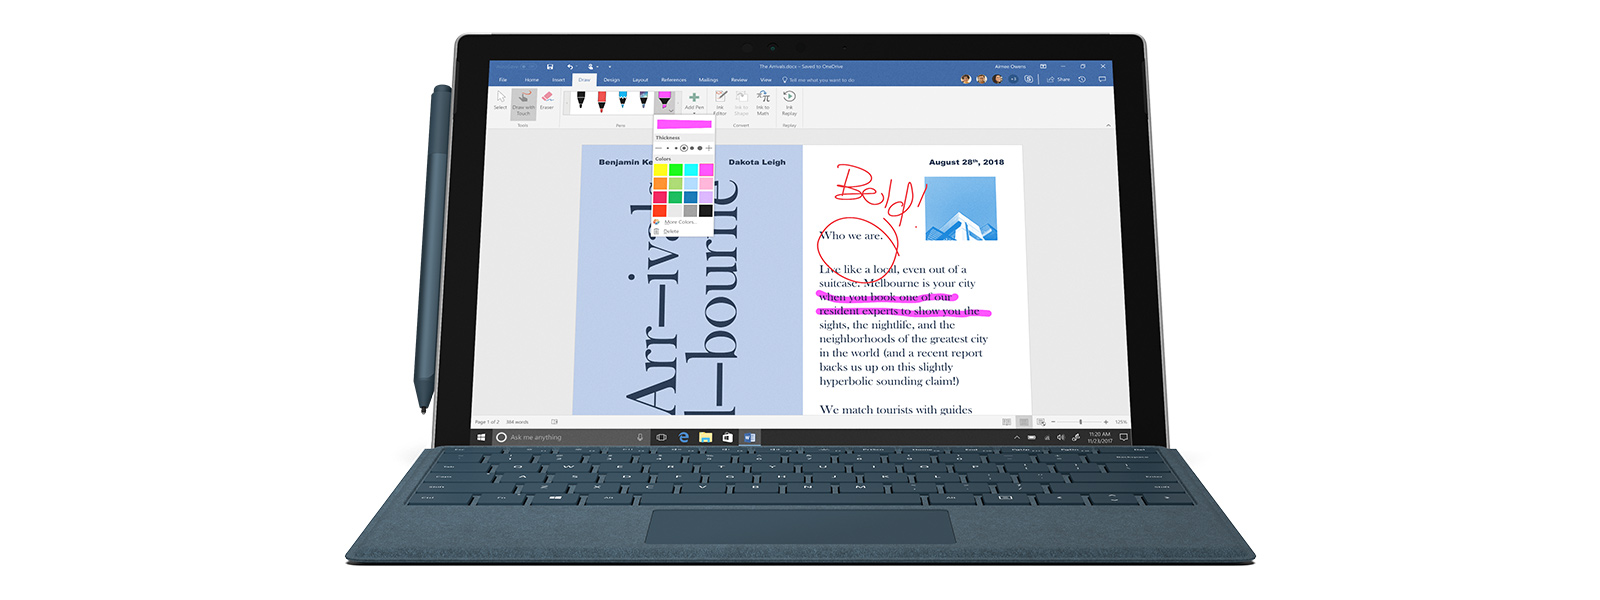 A Surface Pro device showcasing inking in a Paint 3D screen